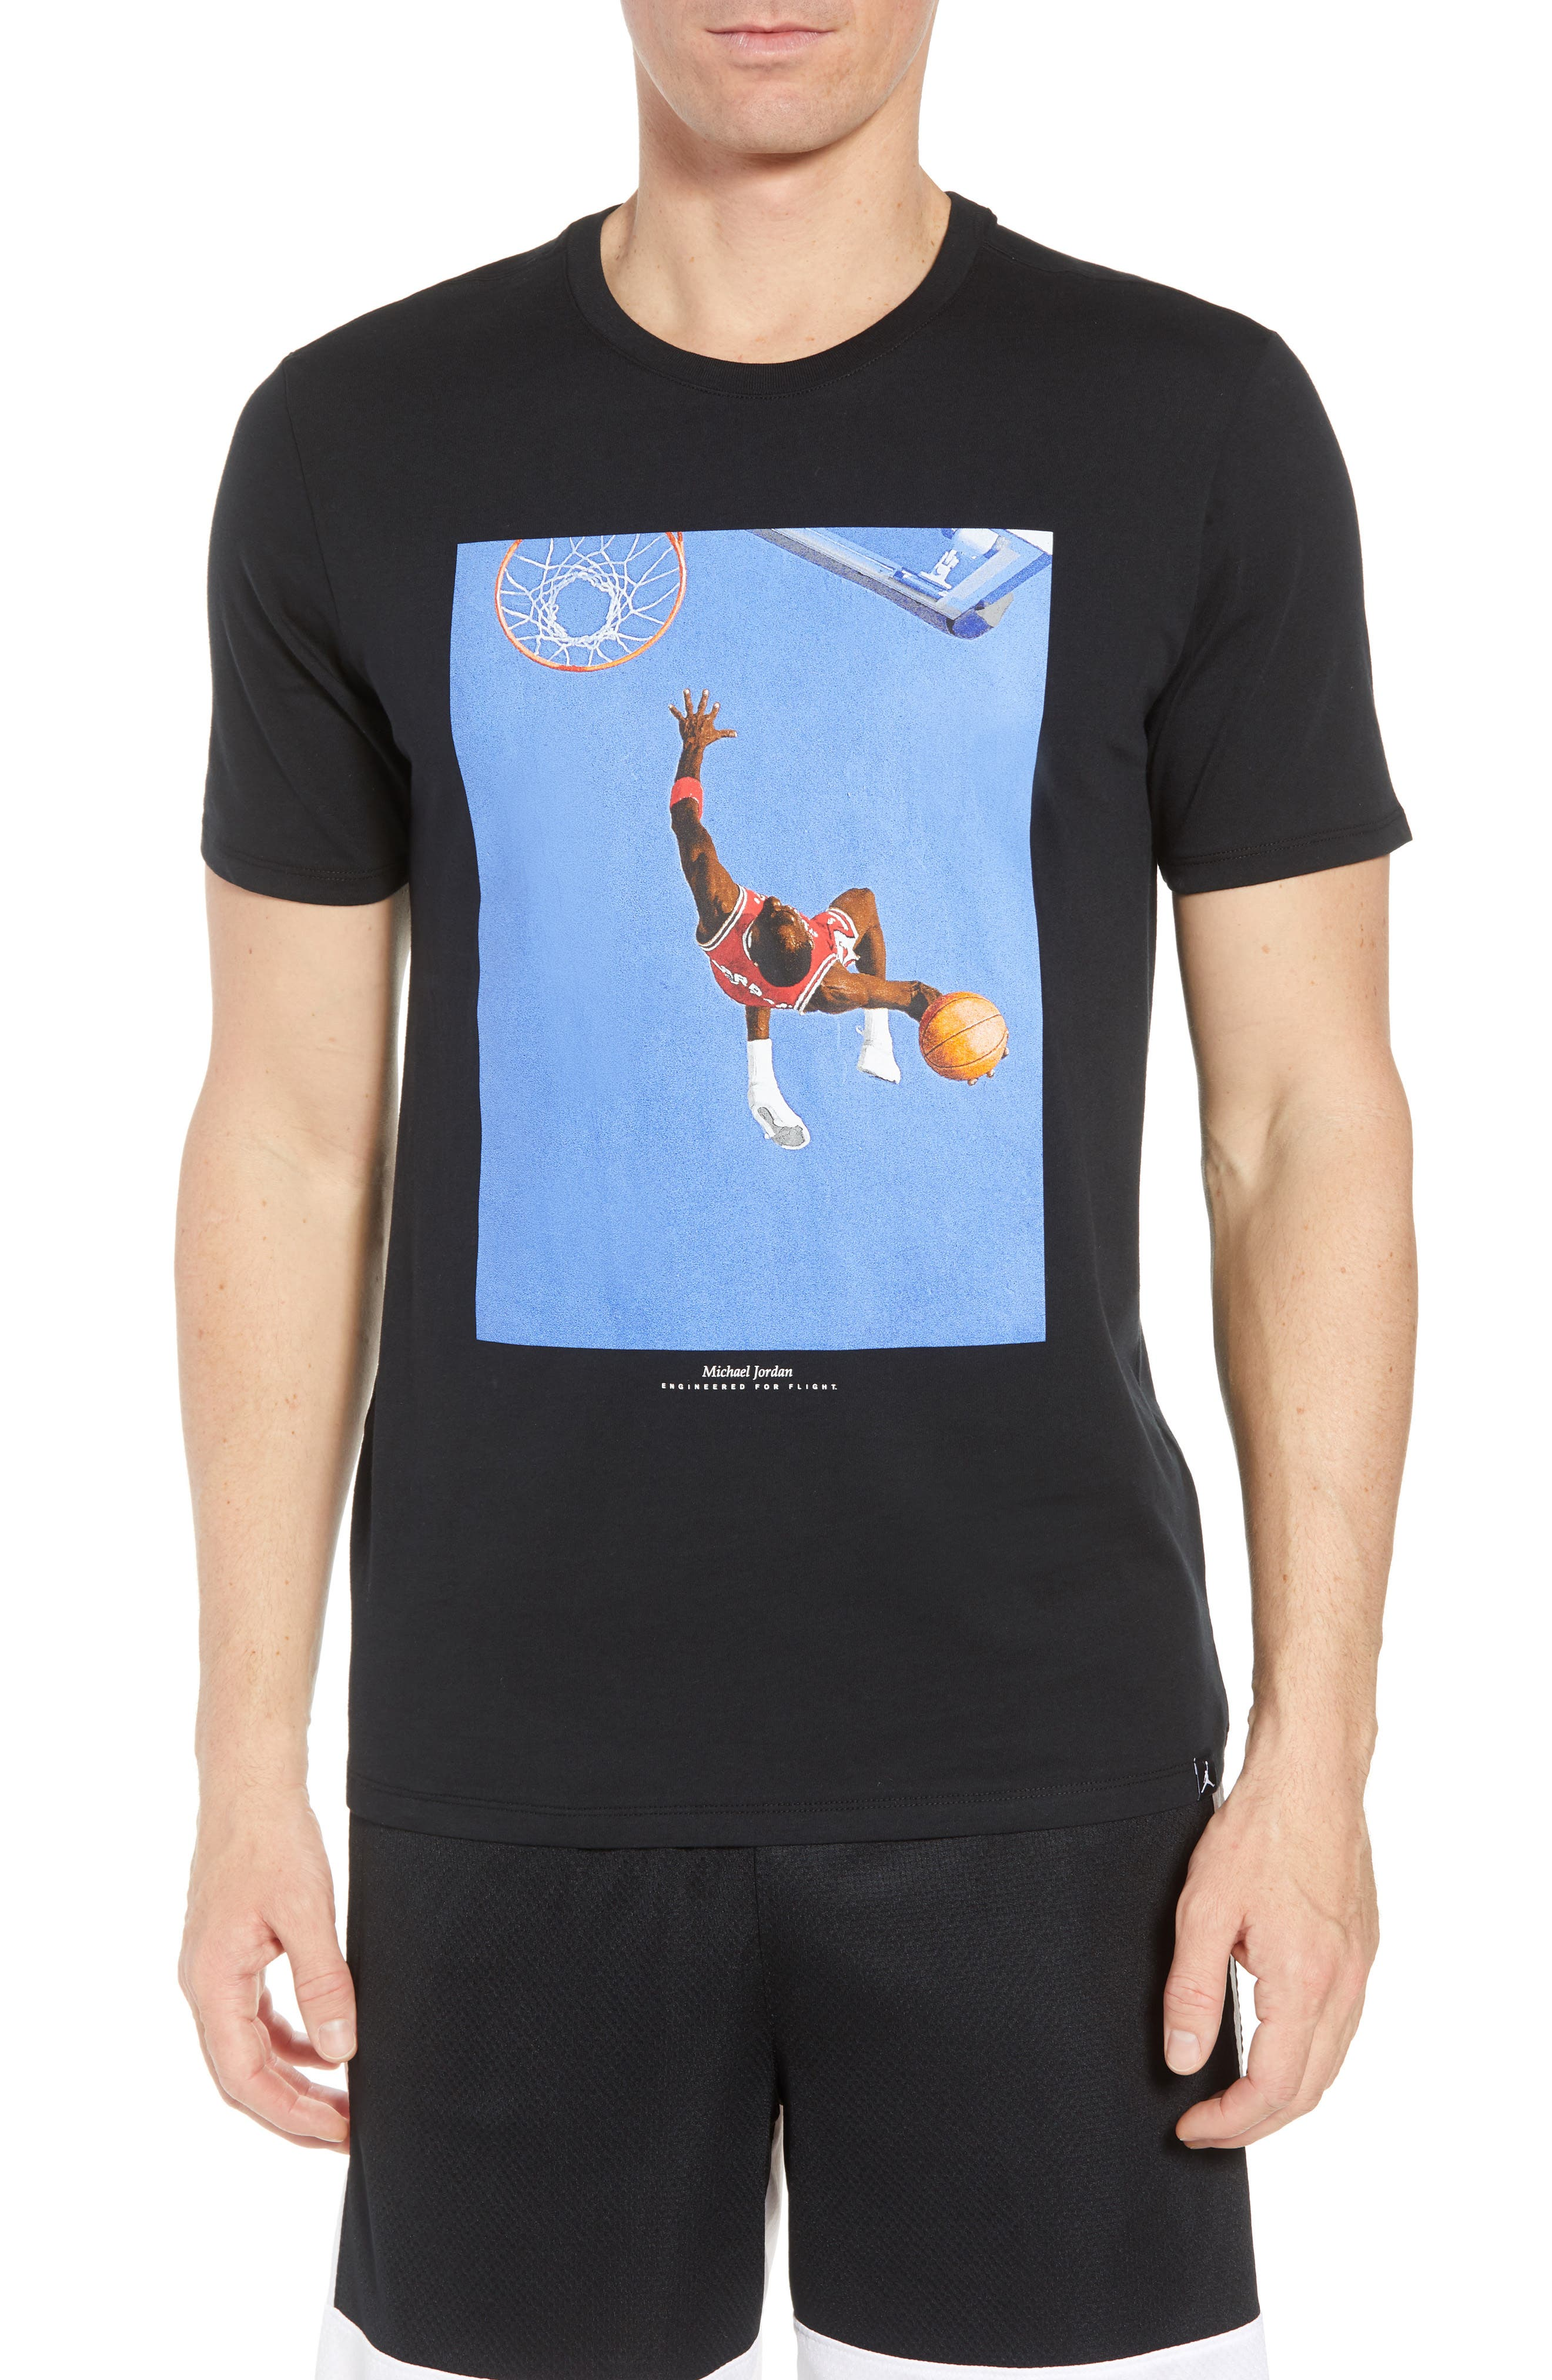 Sports Illustrated Graphic T-Shirt,                             Main thumbnail 1, color,